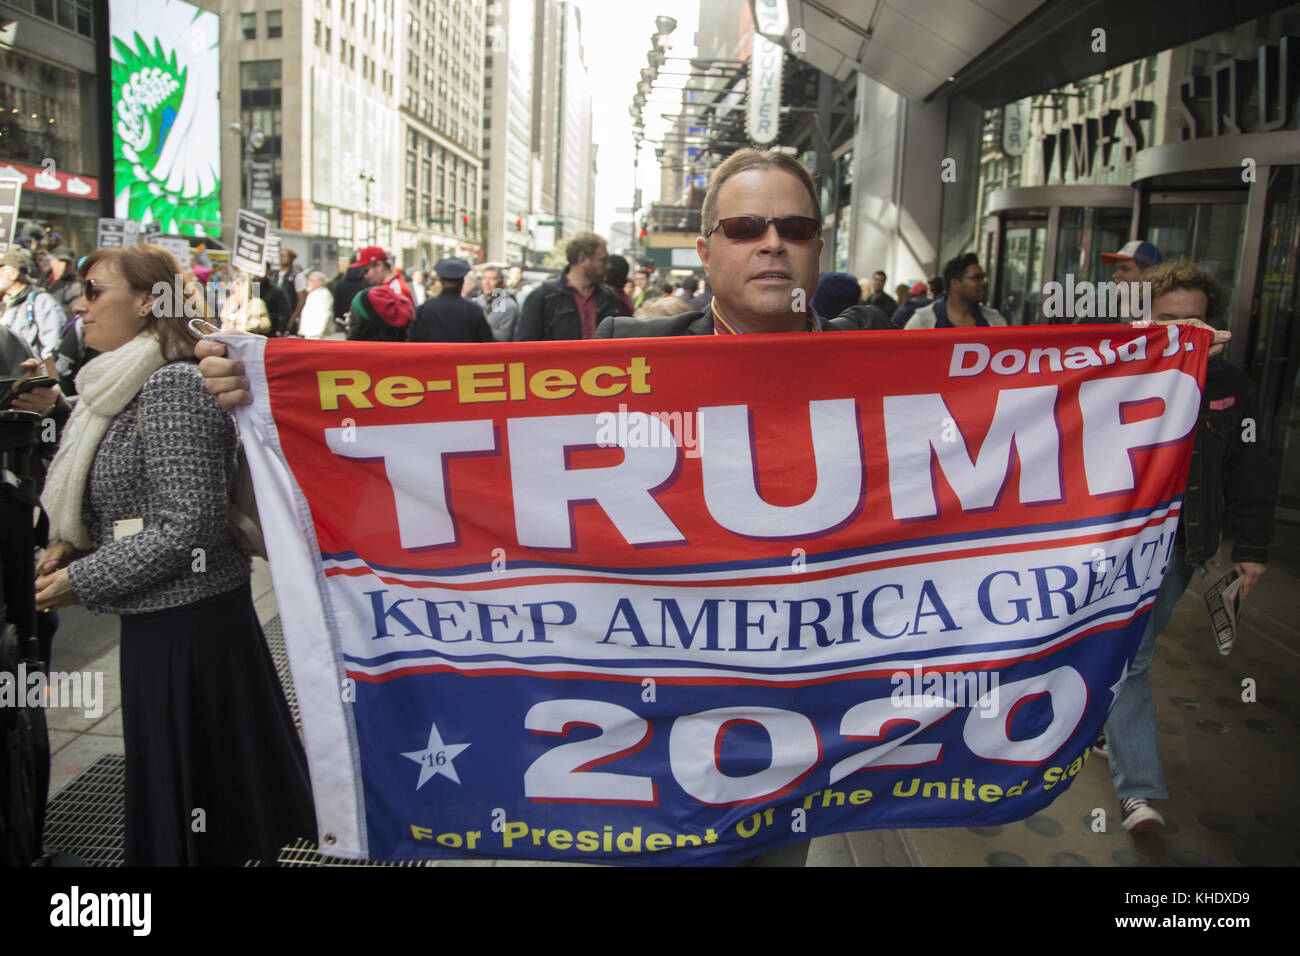 Trump supporter outside a large anti Trump/Pence regime rally in Times Square in New York City. - Stock Image